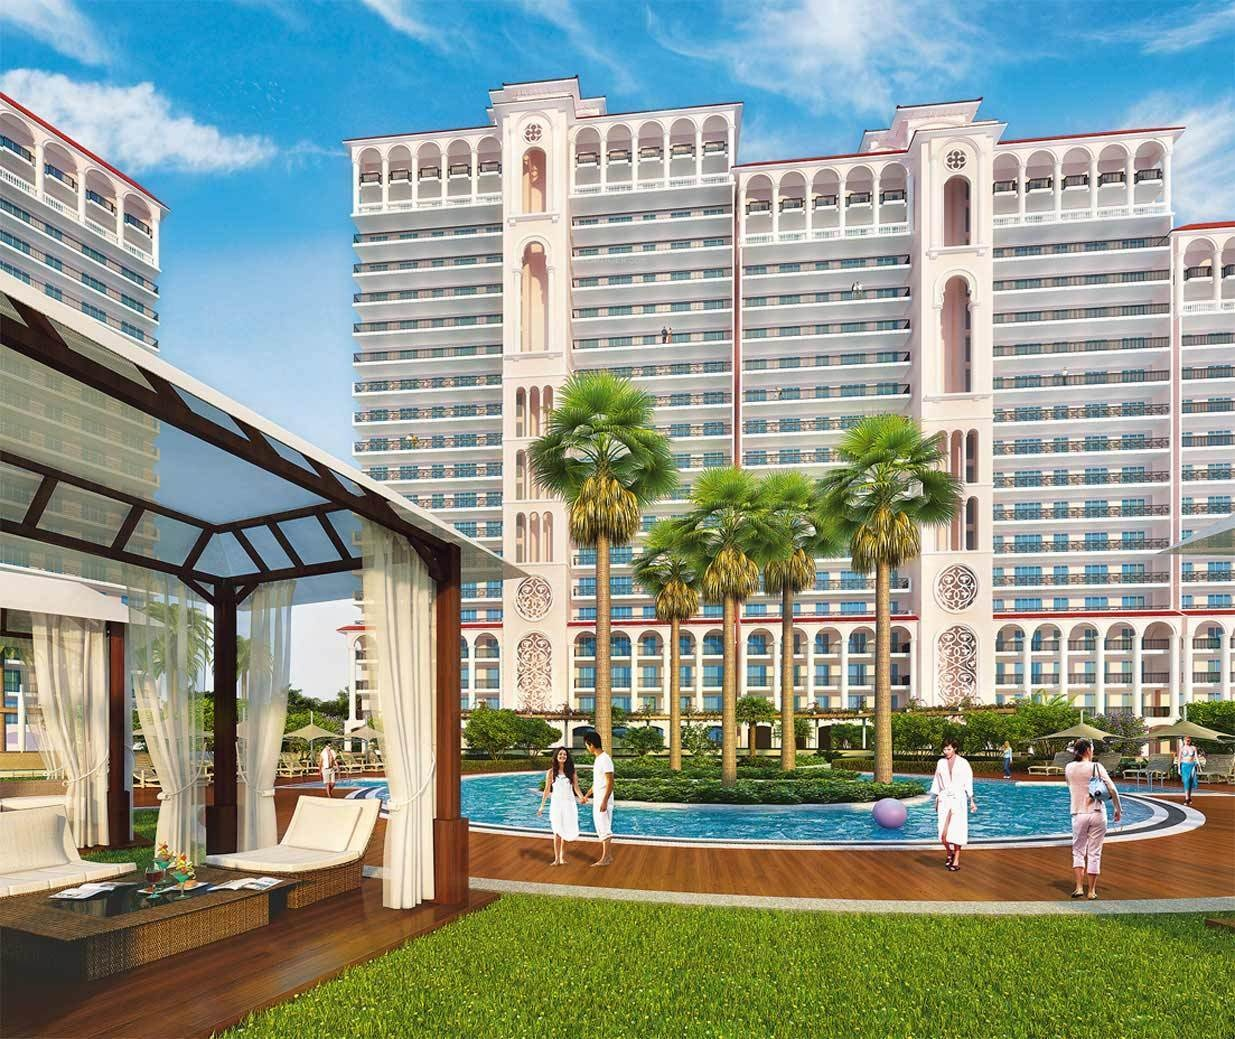 The Skycourt front view